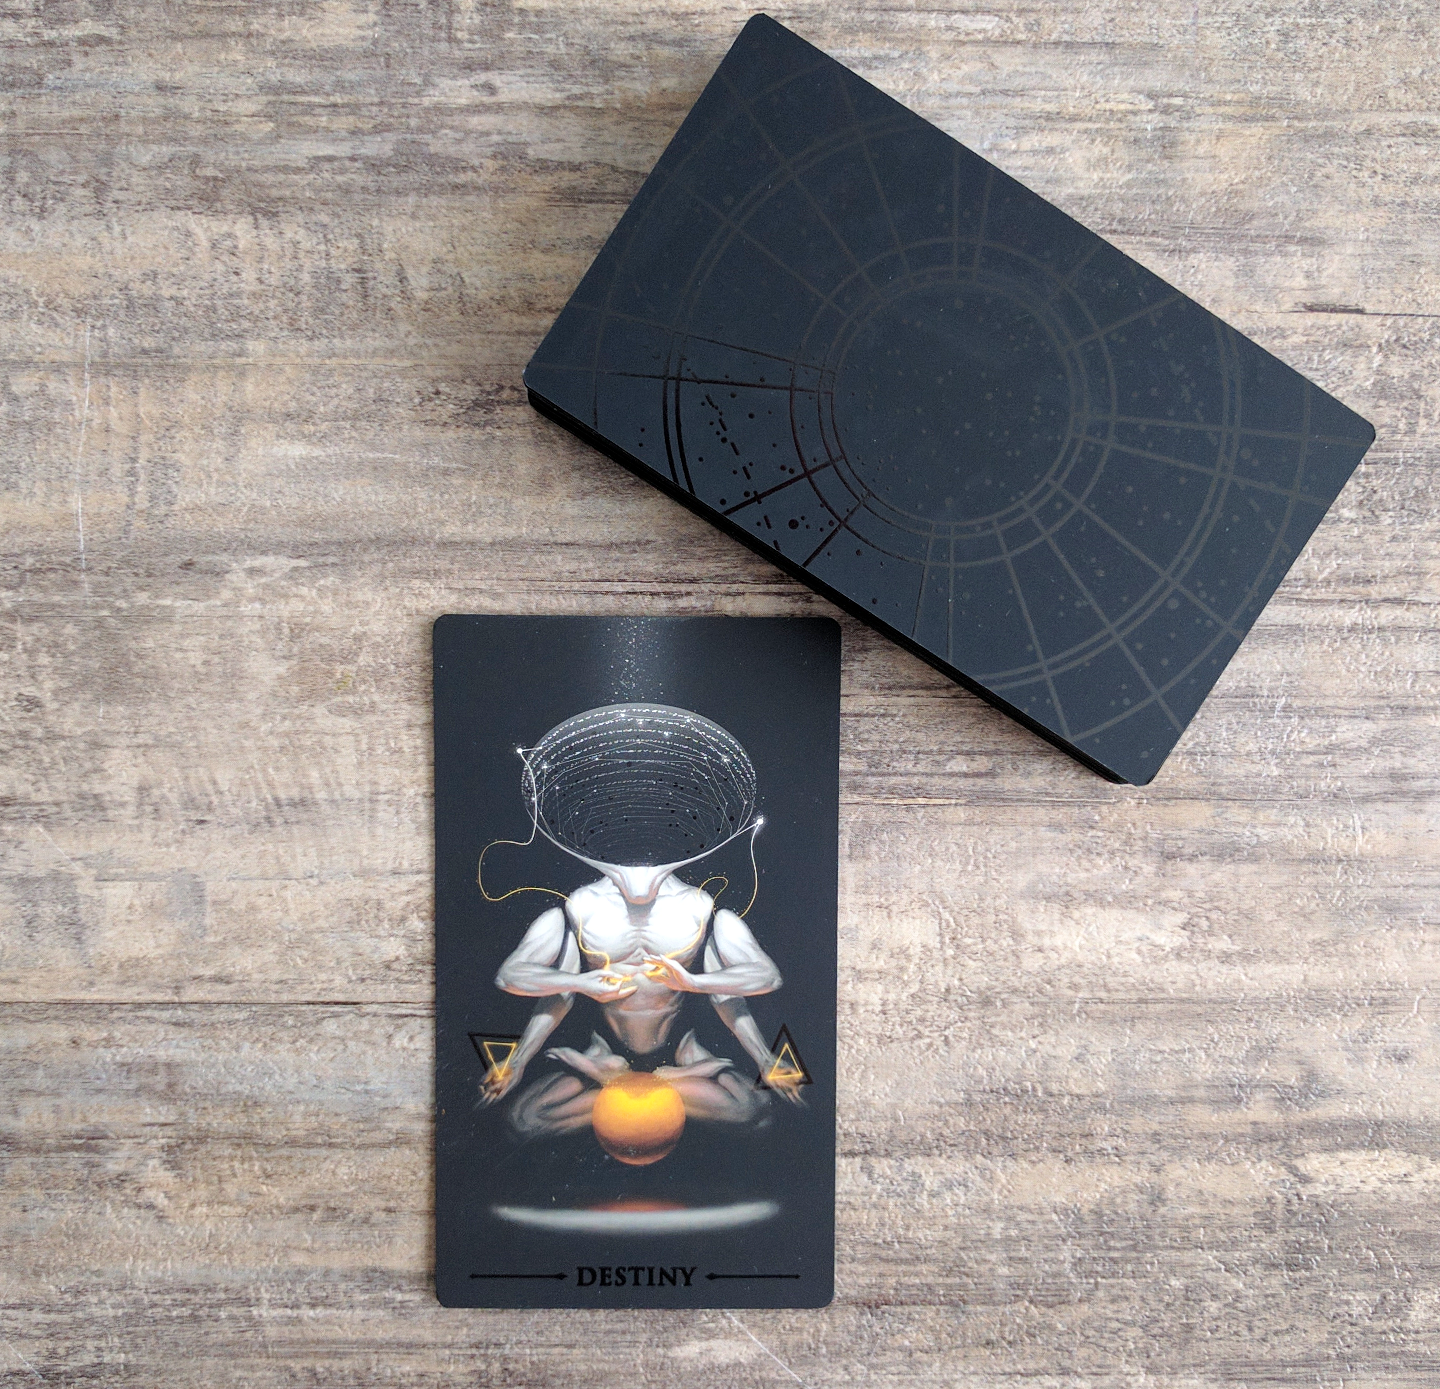 The Destiny card is a good example of tiny details adding extra significant. Also, here are the card backs if you're wondering what those look like.